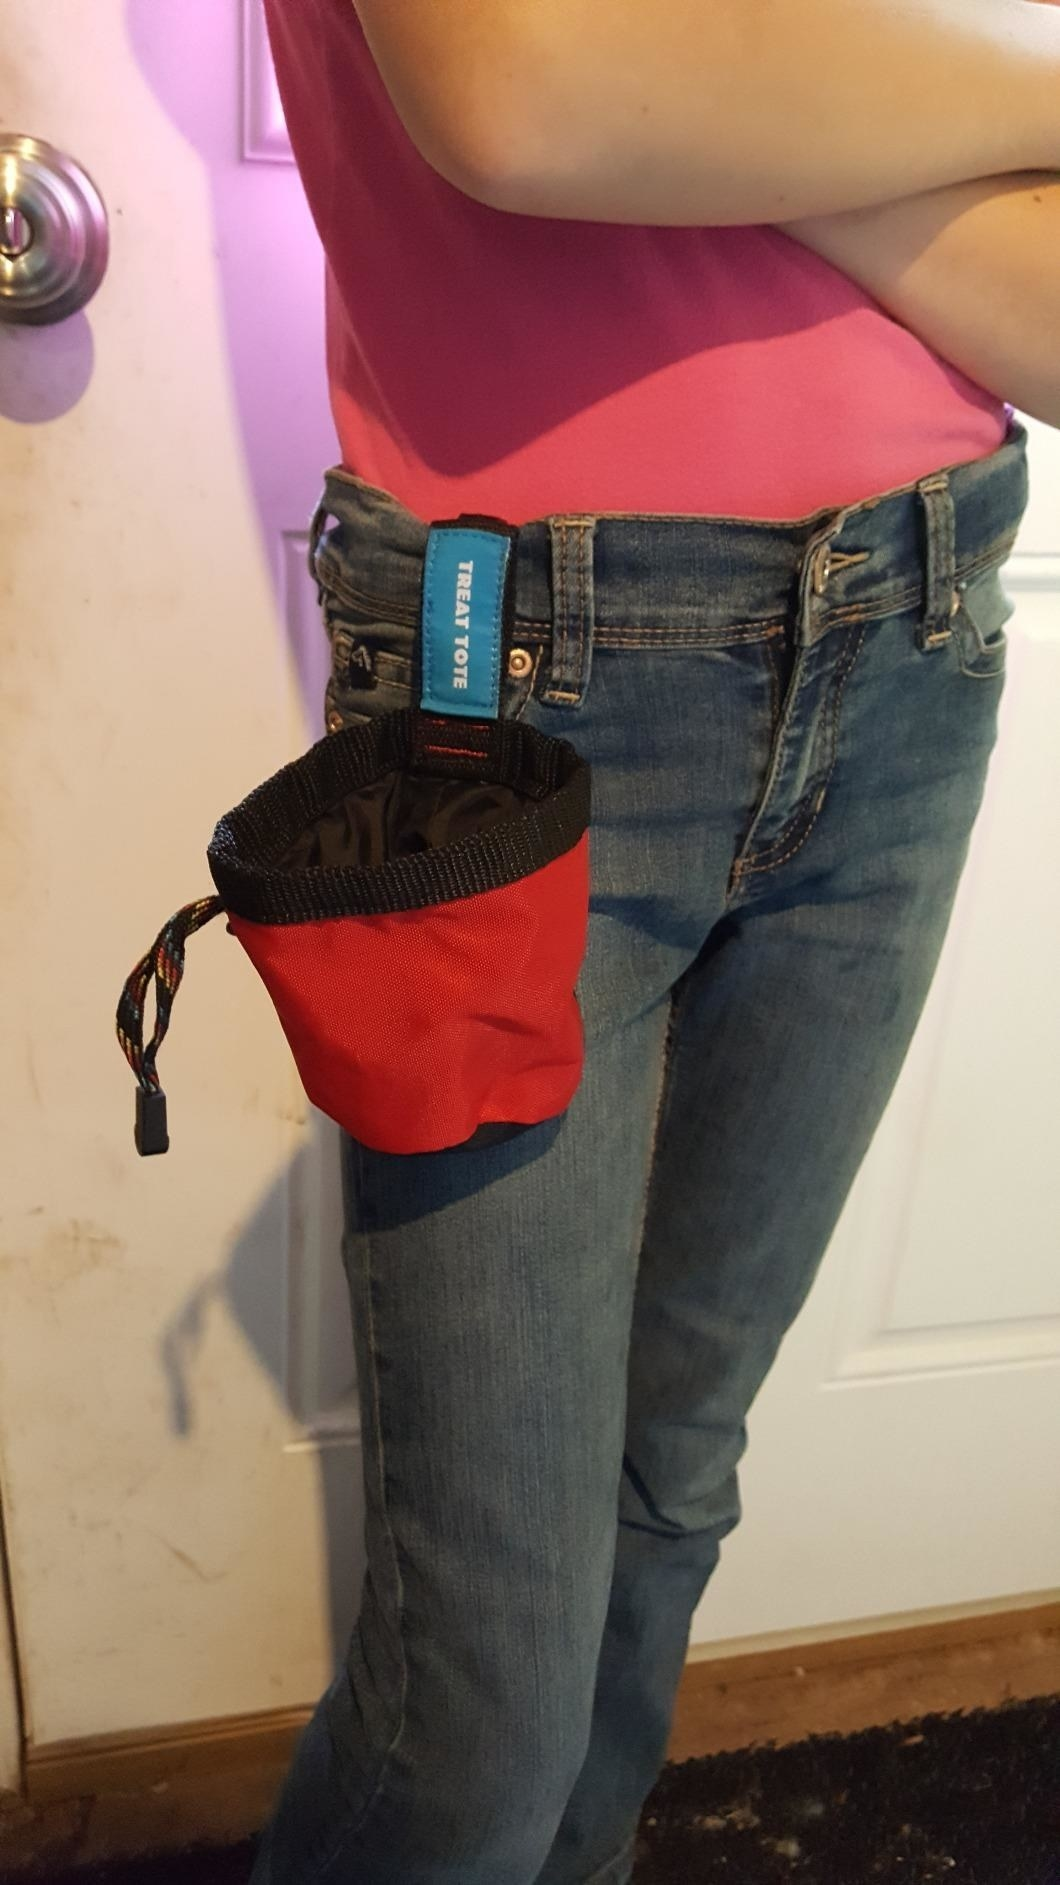 Reviewer's photo of the treat tote attached to their jeans